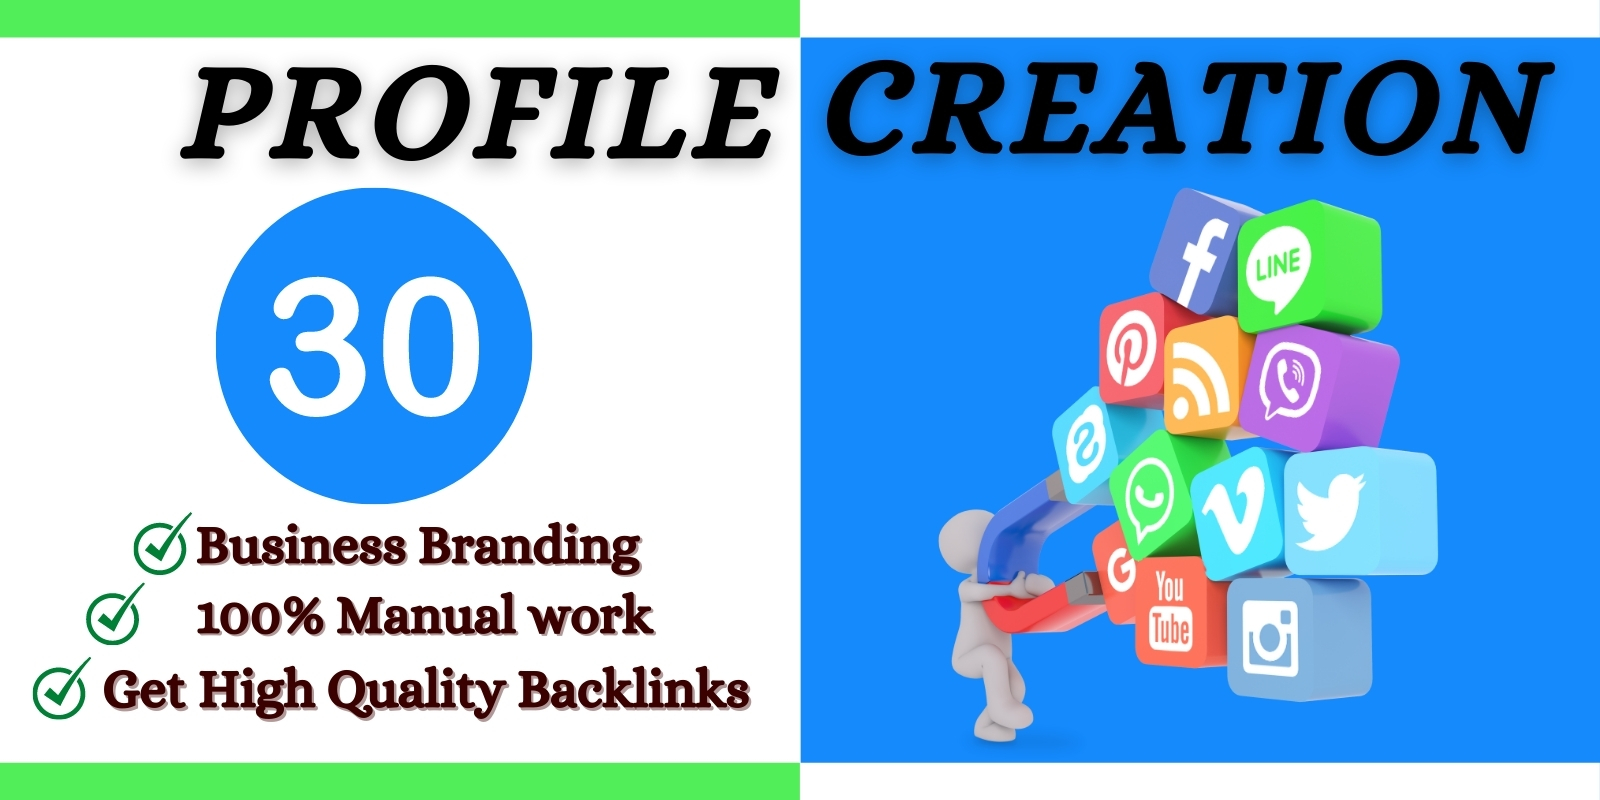 I will do 30 social media profile and page creation